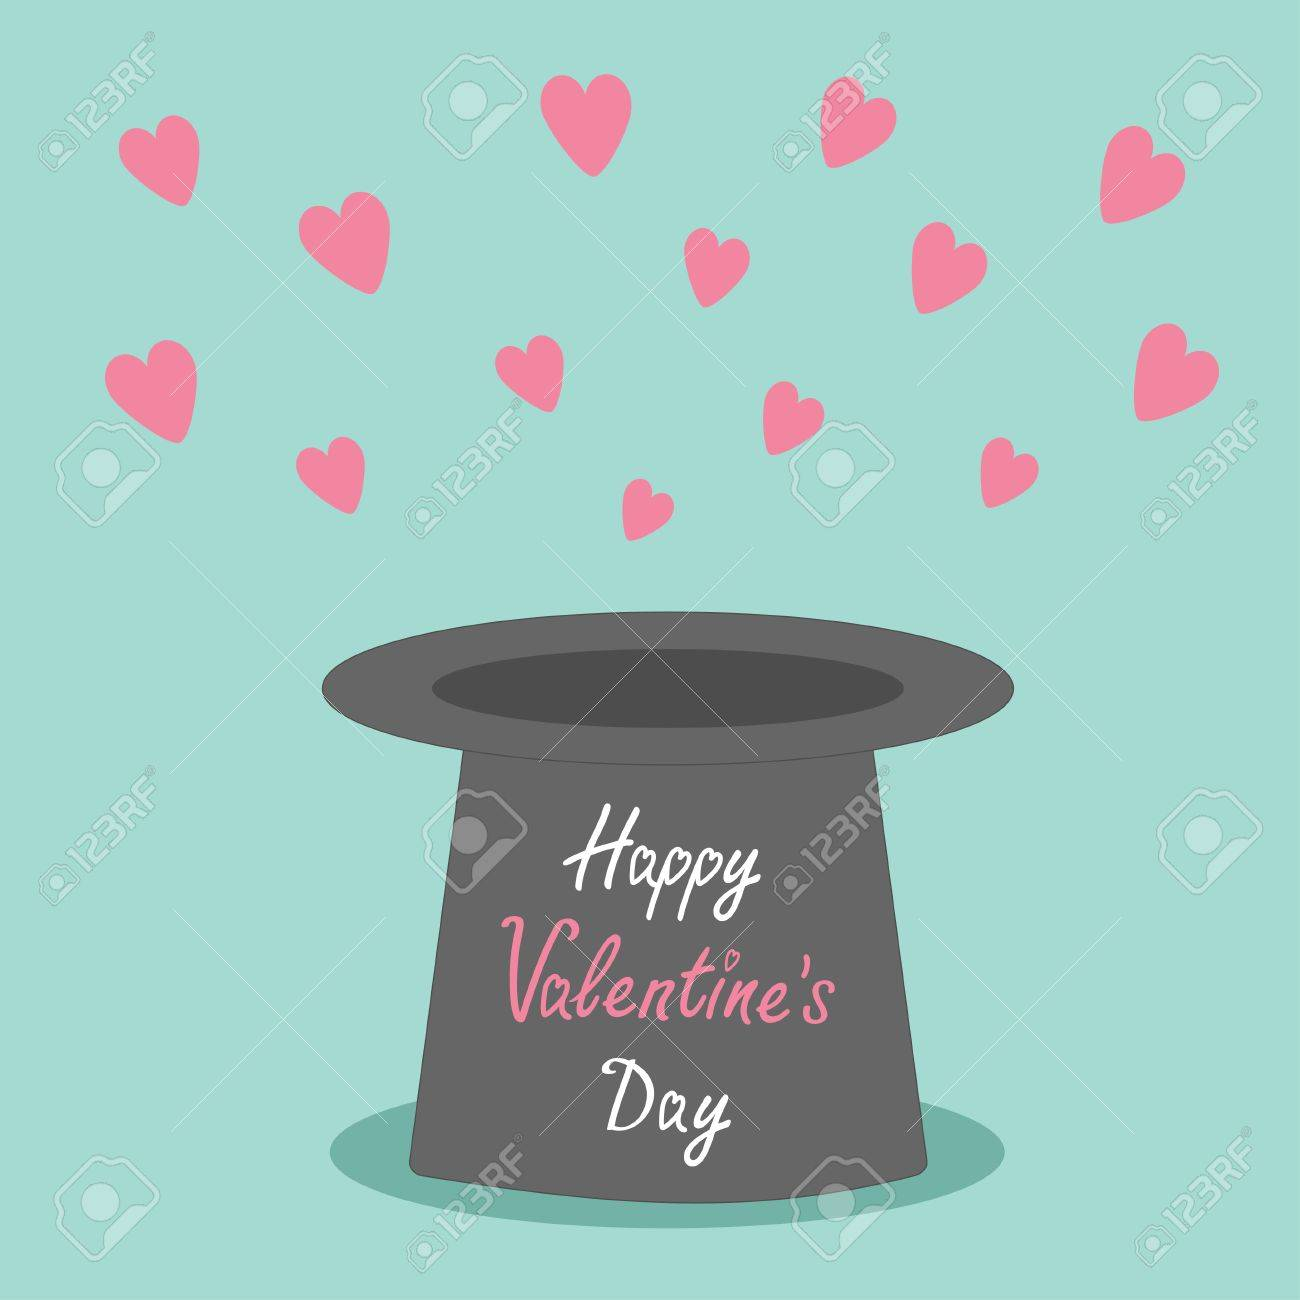 0c21b69f46e ... Valentines day card Vector illustration. Magic black hat with flying  pink hearts on blue background.. Flat design style Happy